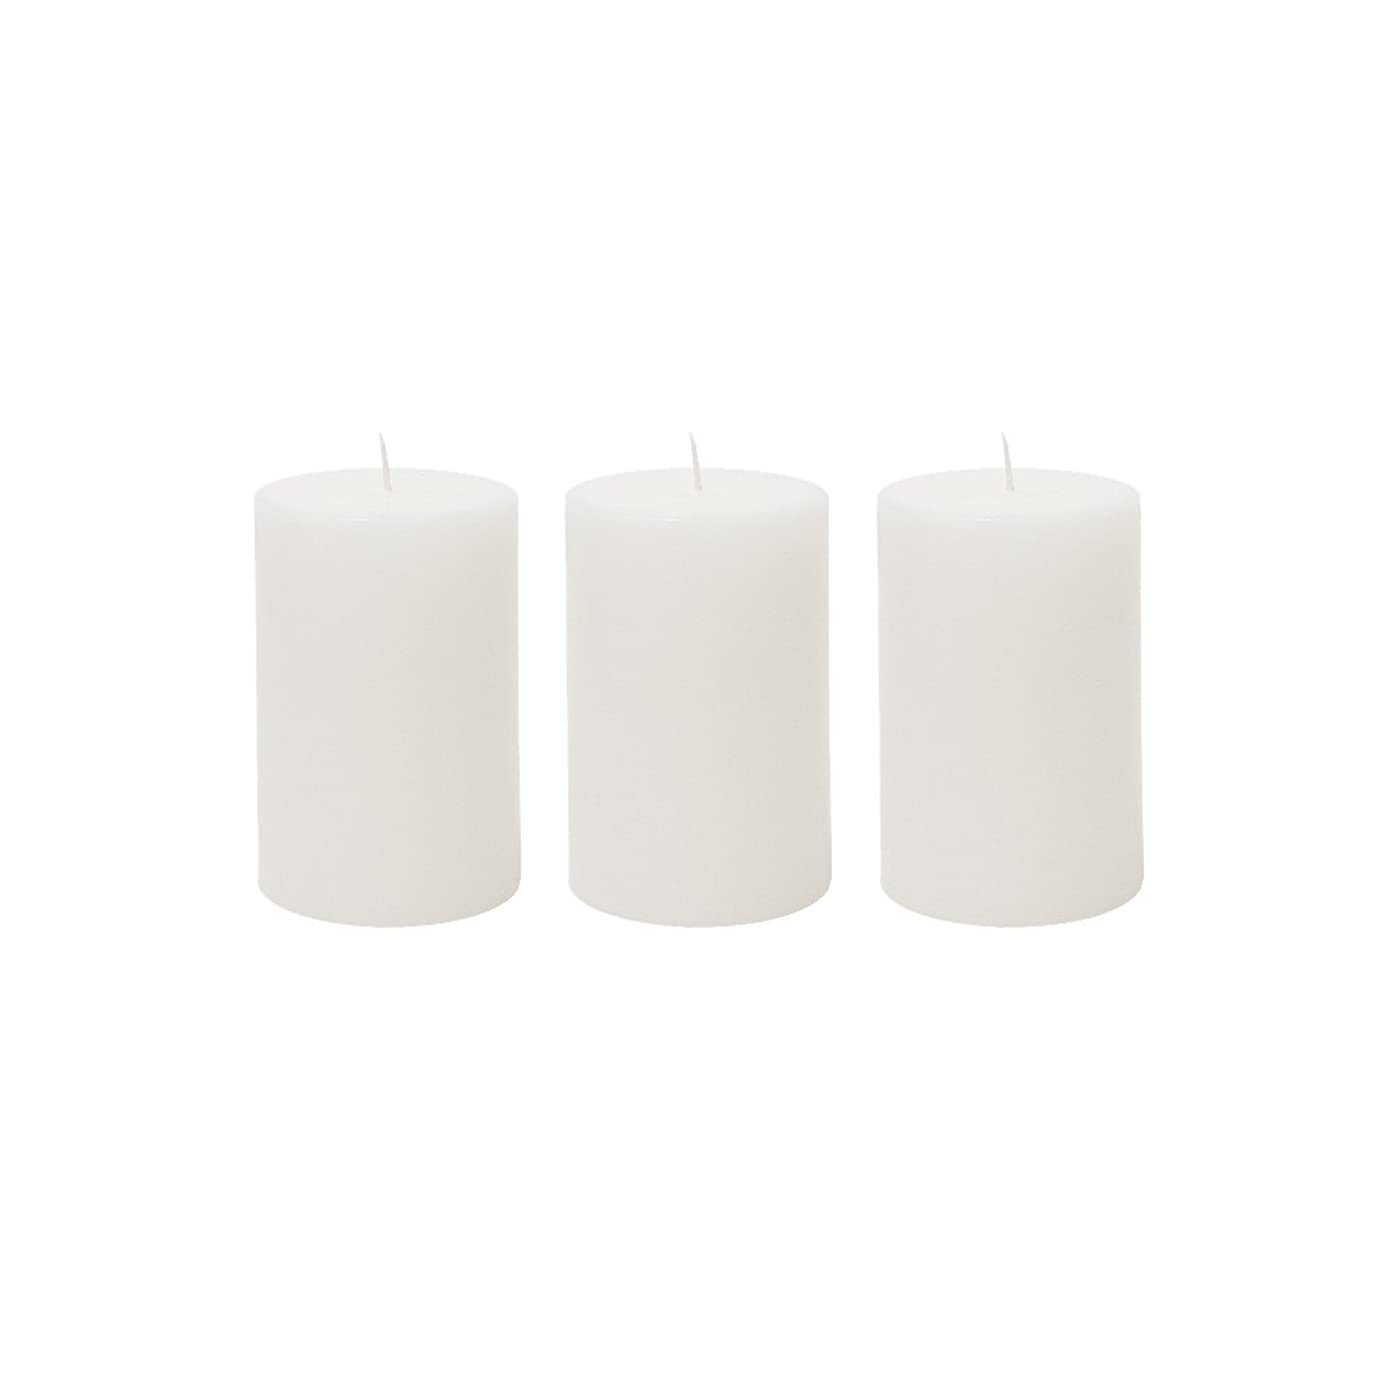 欲しいですぴかぴか病な(3, 5.1cm x 7.6cm Round) - Mega Candles 3 pcs Unscented White Round Pillar Candle Hand Poured Premium Wax Candles 5.1cm x 7.6cm For Home Decor, Wedding Receptions, Baby Showers, Birthdays, Celebrations, Party Favours & More